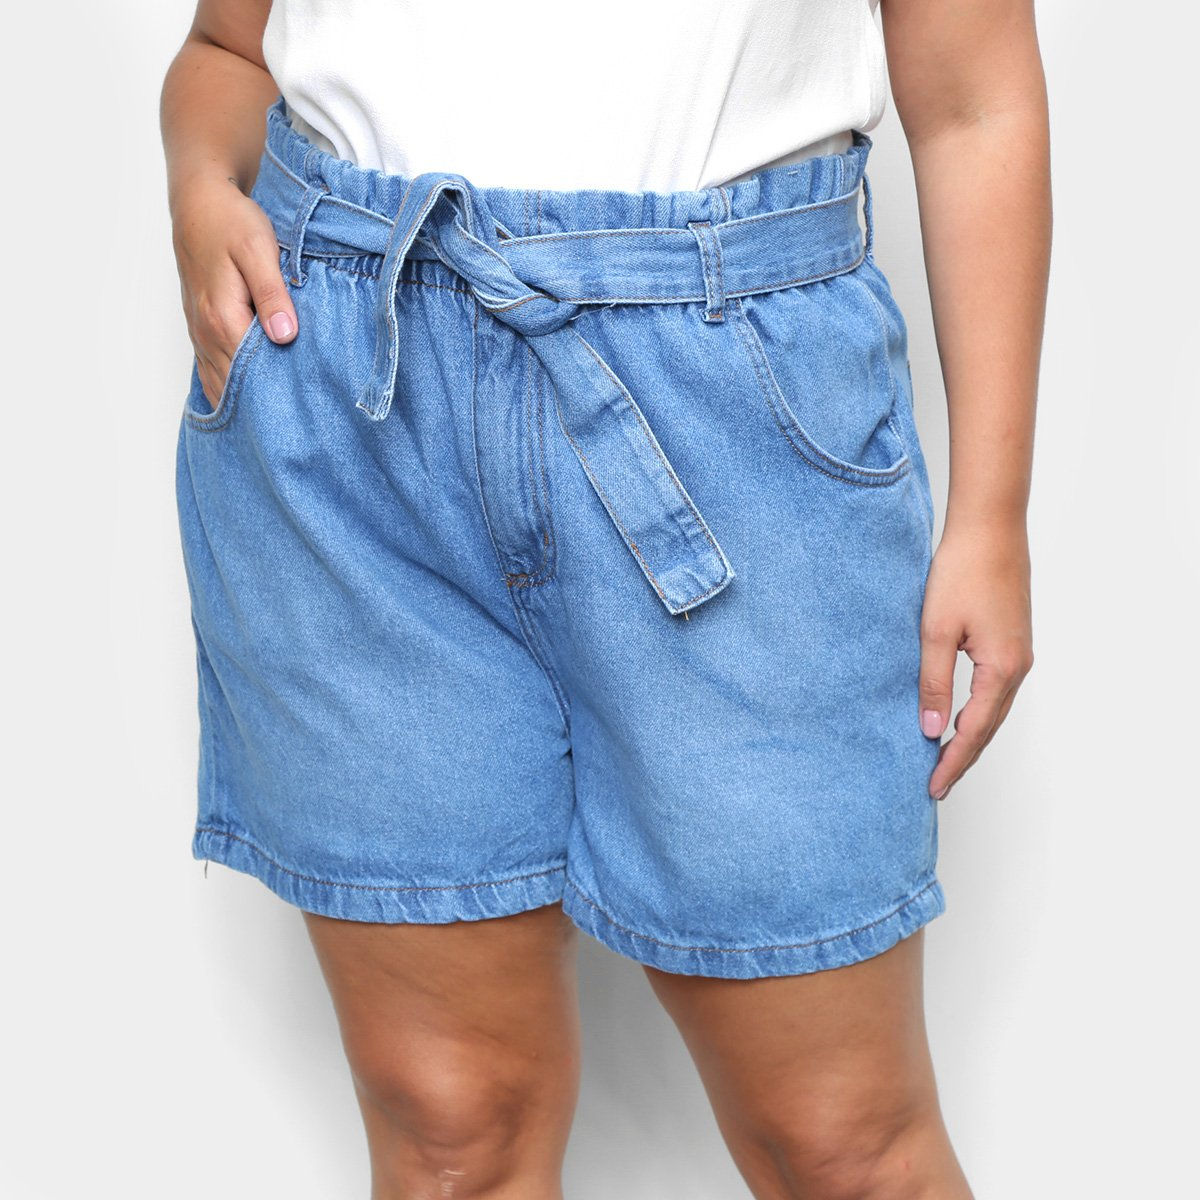 Short Jeans Cambos Plus Size Clochard Feminino